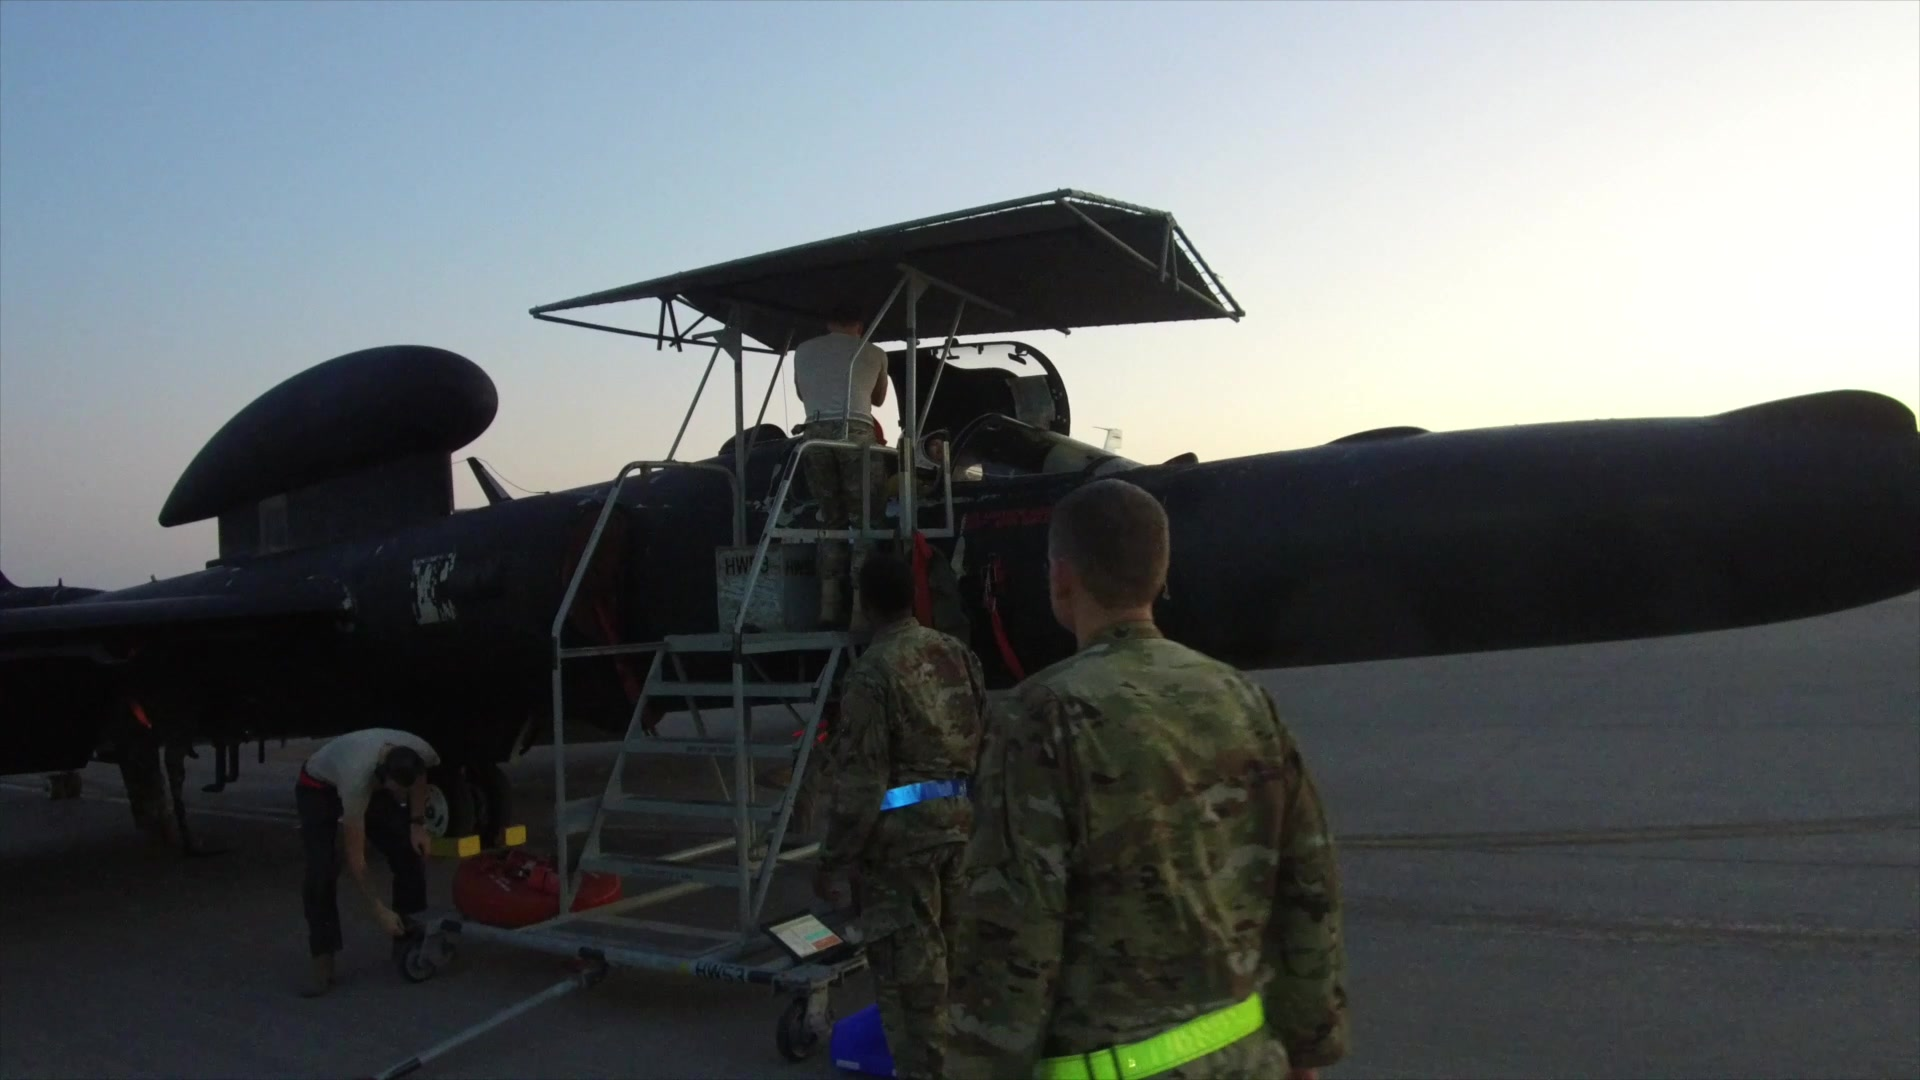 The 380th Expeditionary Maintenance Group is responsible for the maintenance and upkeep of all aircraft at Al Dhafra Air Base. The dedication, expertise and fortitude of 380th EMXG personnel allows our aircraft to continue their duties across the AOR, and continue to Make the Mission Happen.